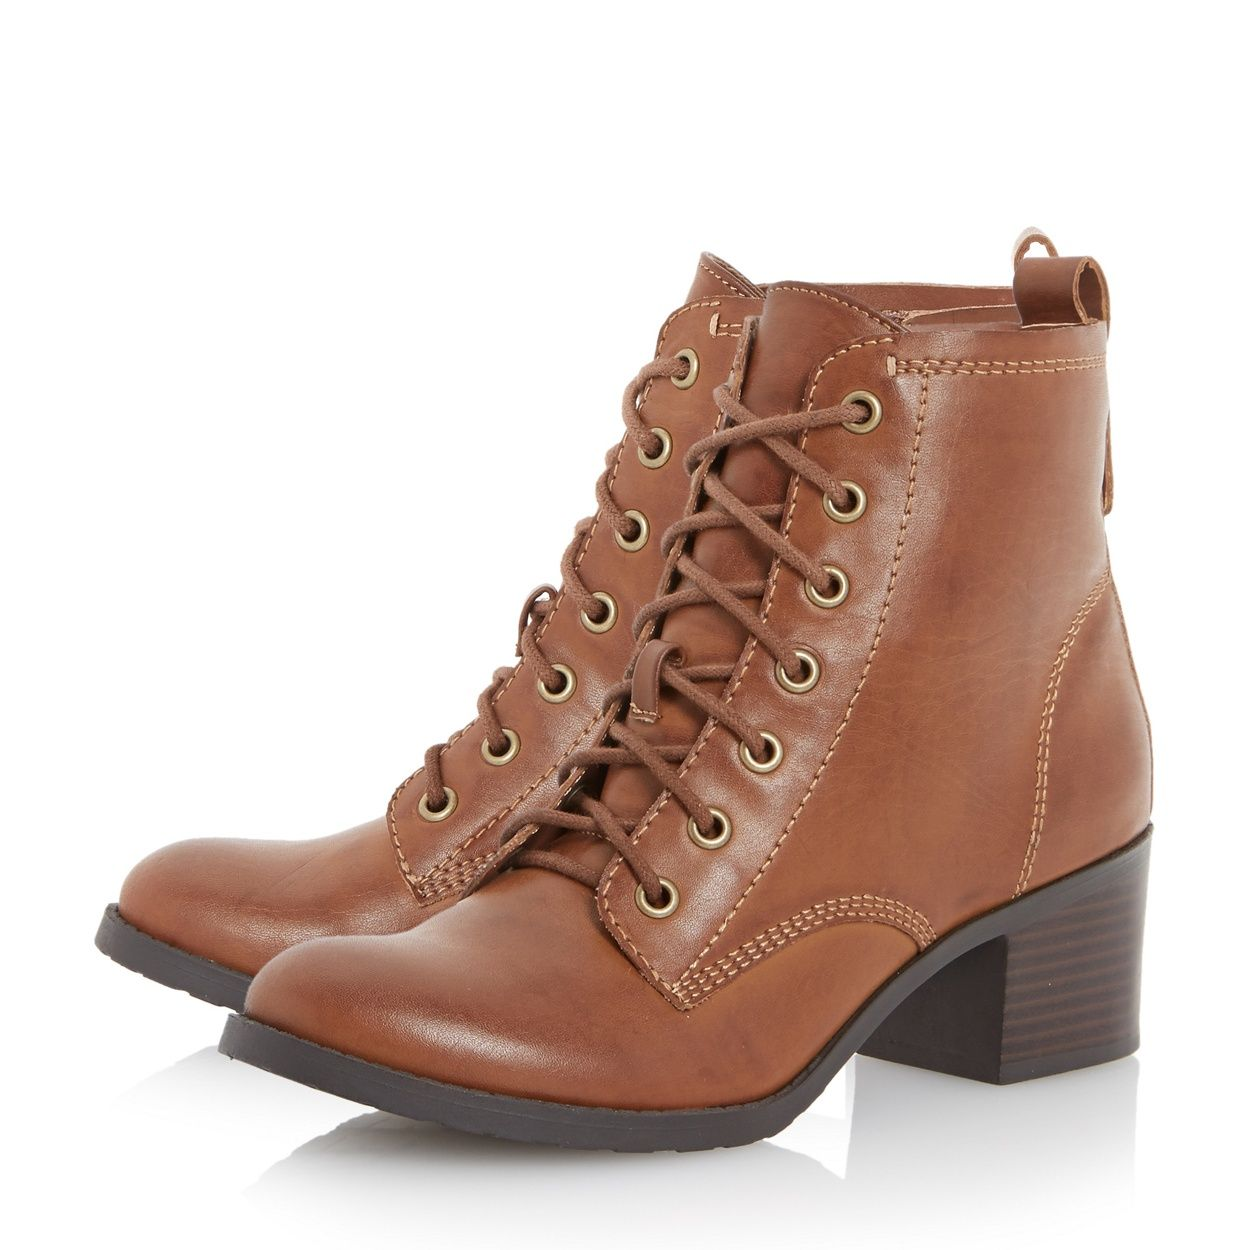 Channel some 80s Brat Pack glamour with this heeled cleated sole boot. It comes with a medium block heel, metal eyelet lacing and a rounded toe. Team it with lace tights, tube skirt and batwing sweater for a retro look.